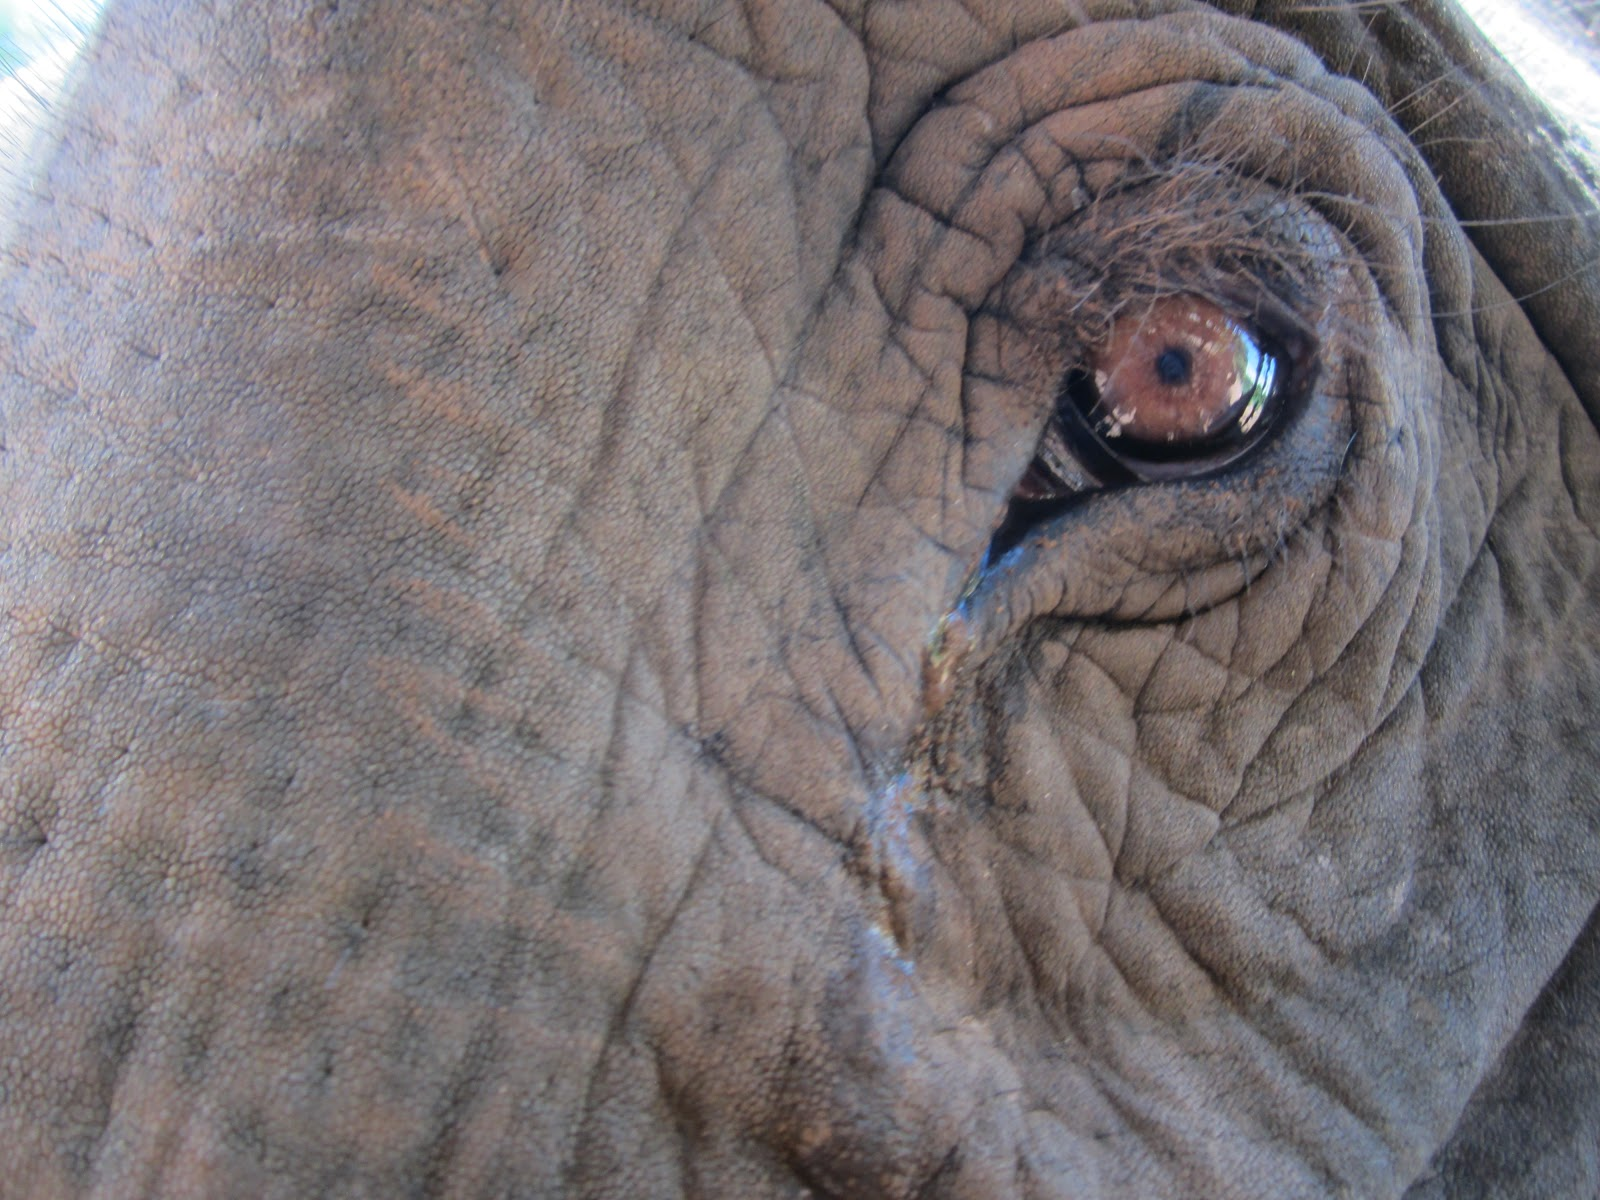 think elephants international seeing red why elephants might